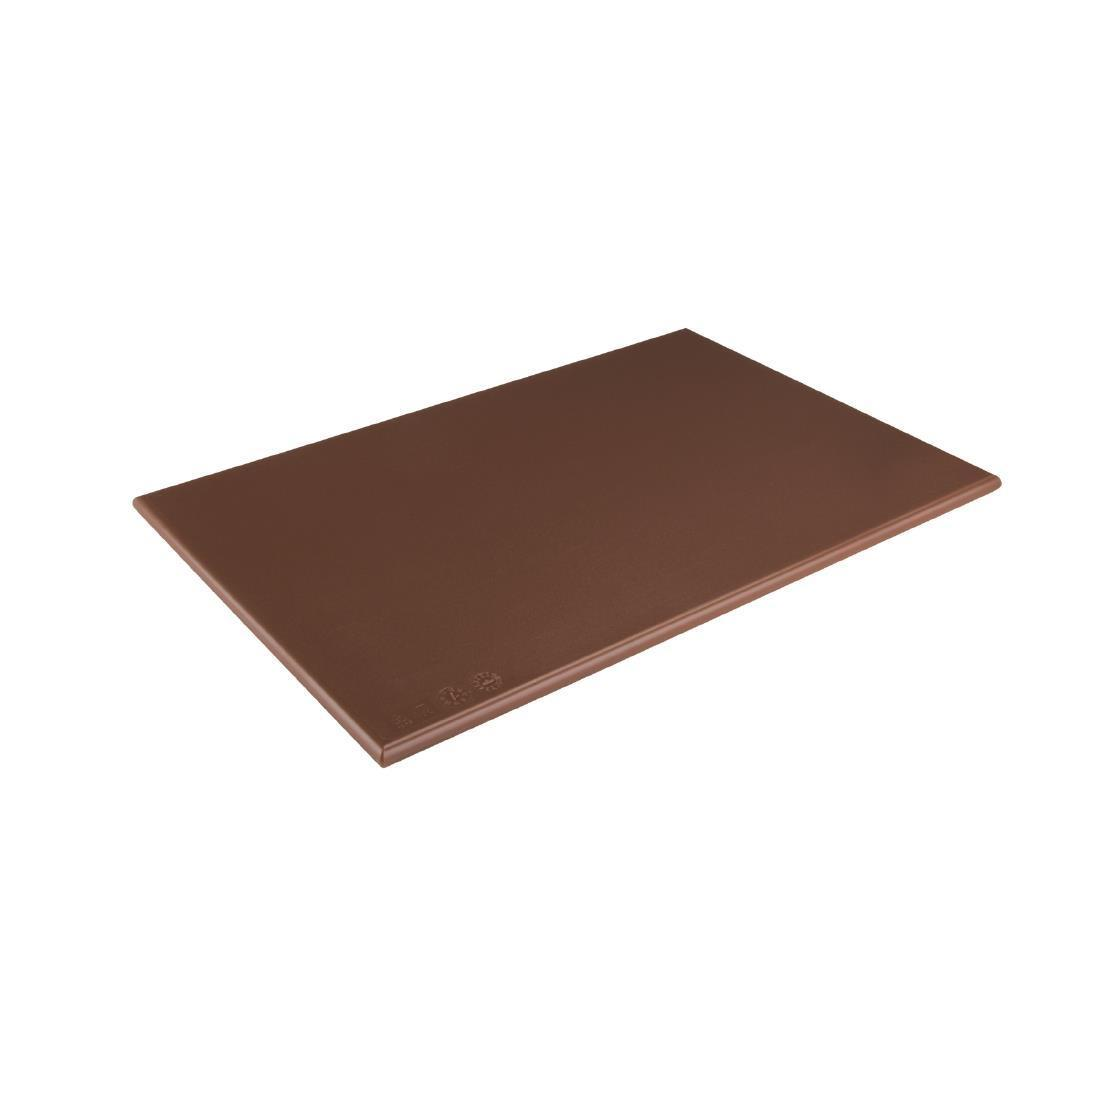 Hygiplas Anti-bacterial Low Density Chopping Board Brown